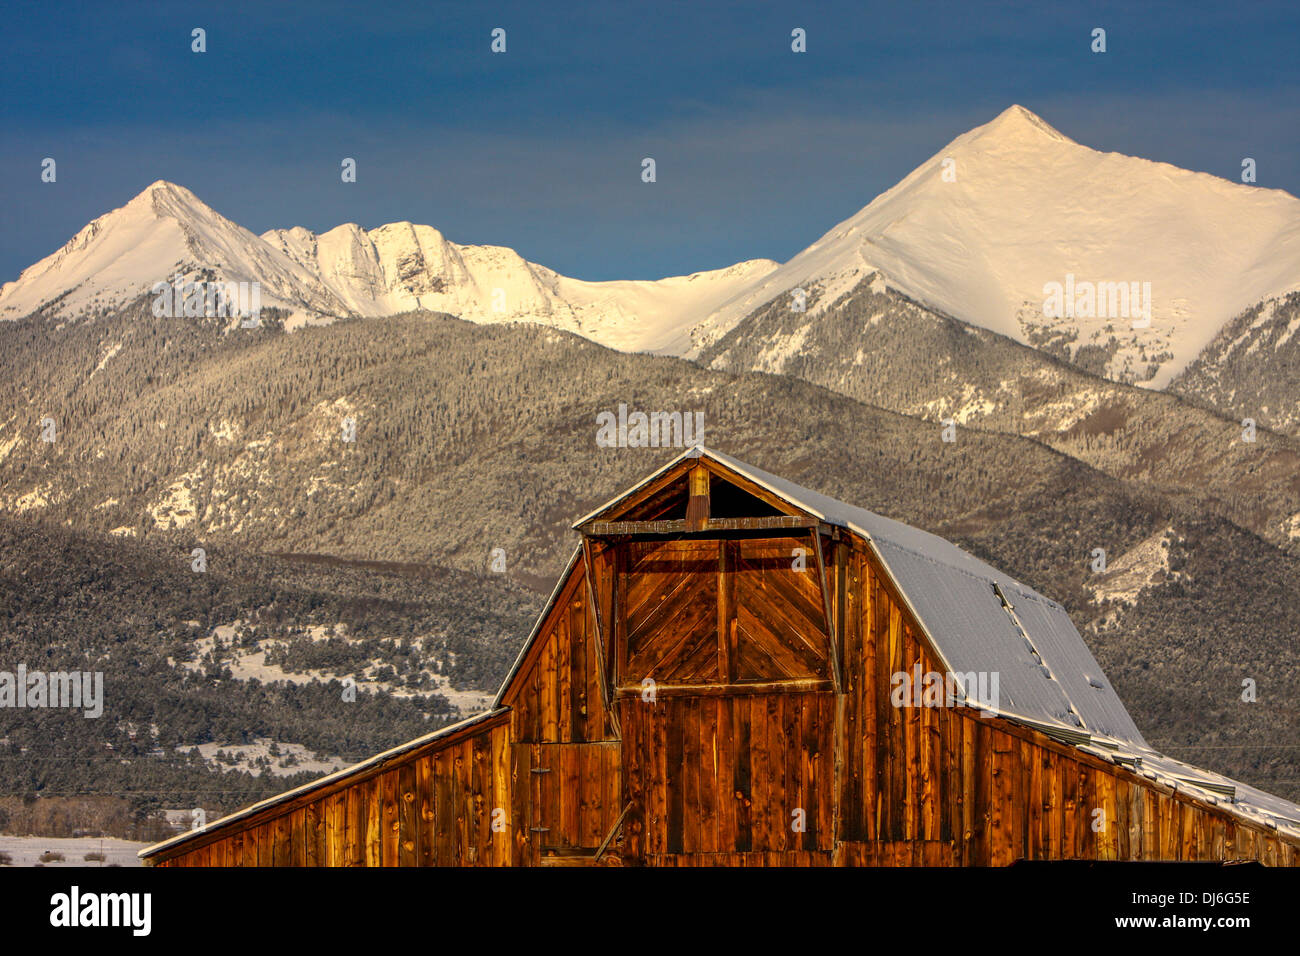 Old West Barn in Colorado Mountains - Stock Image